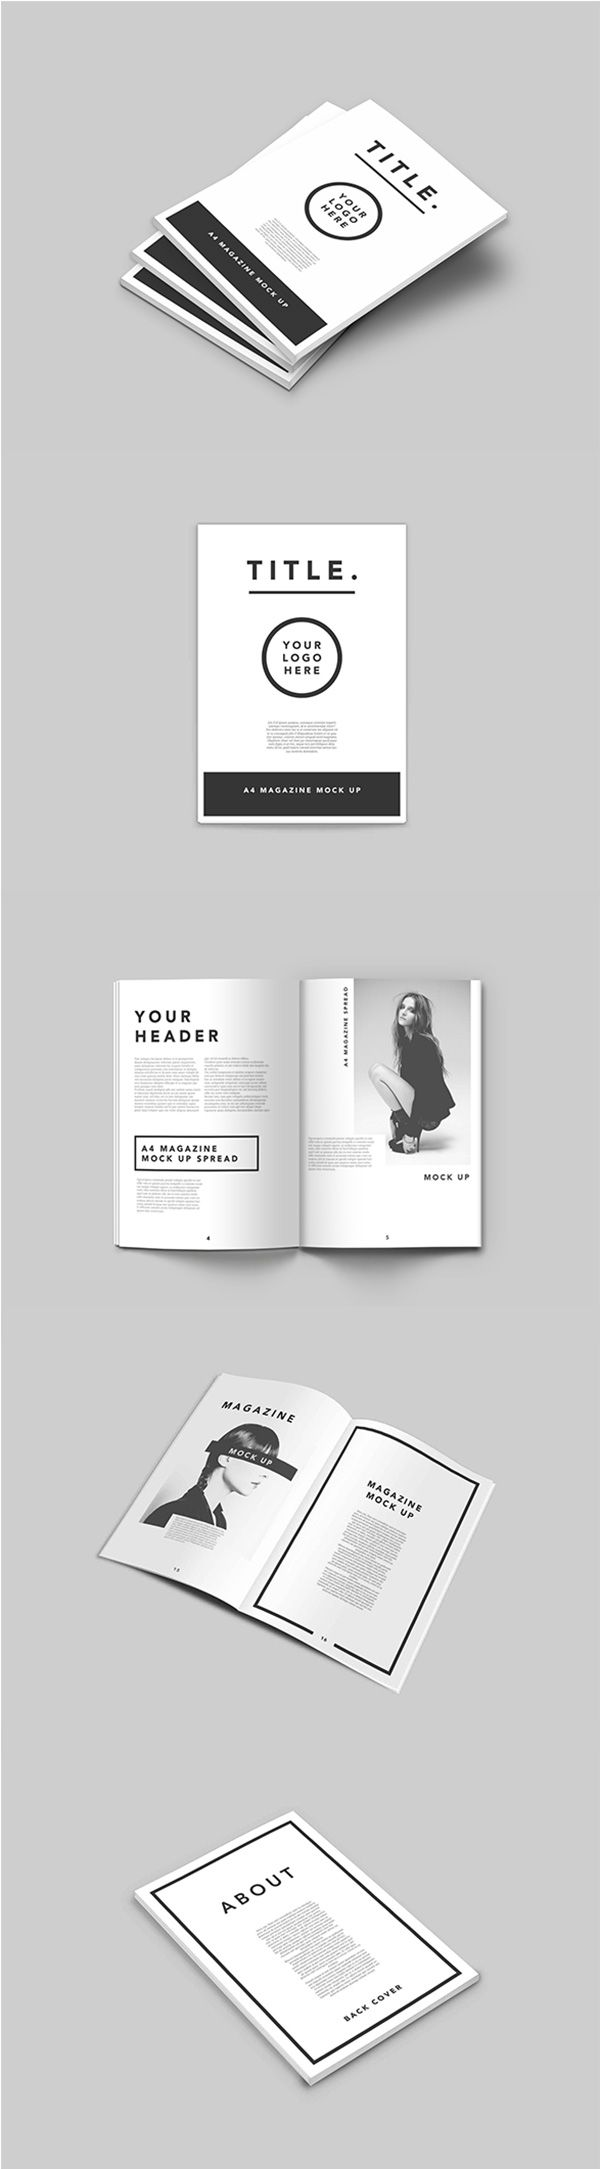 75+ Free PSD Magazine, Book, Cover & Brochure Mock-ups | Template ...